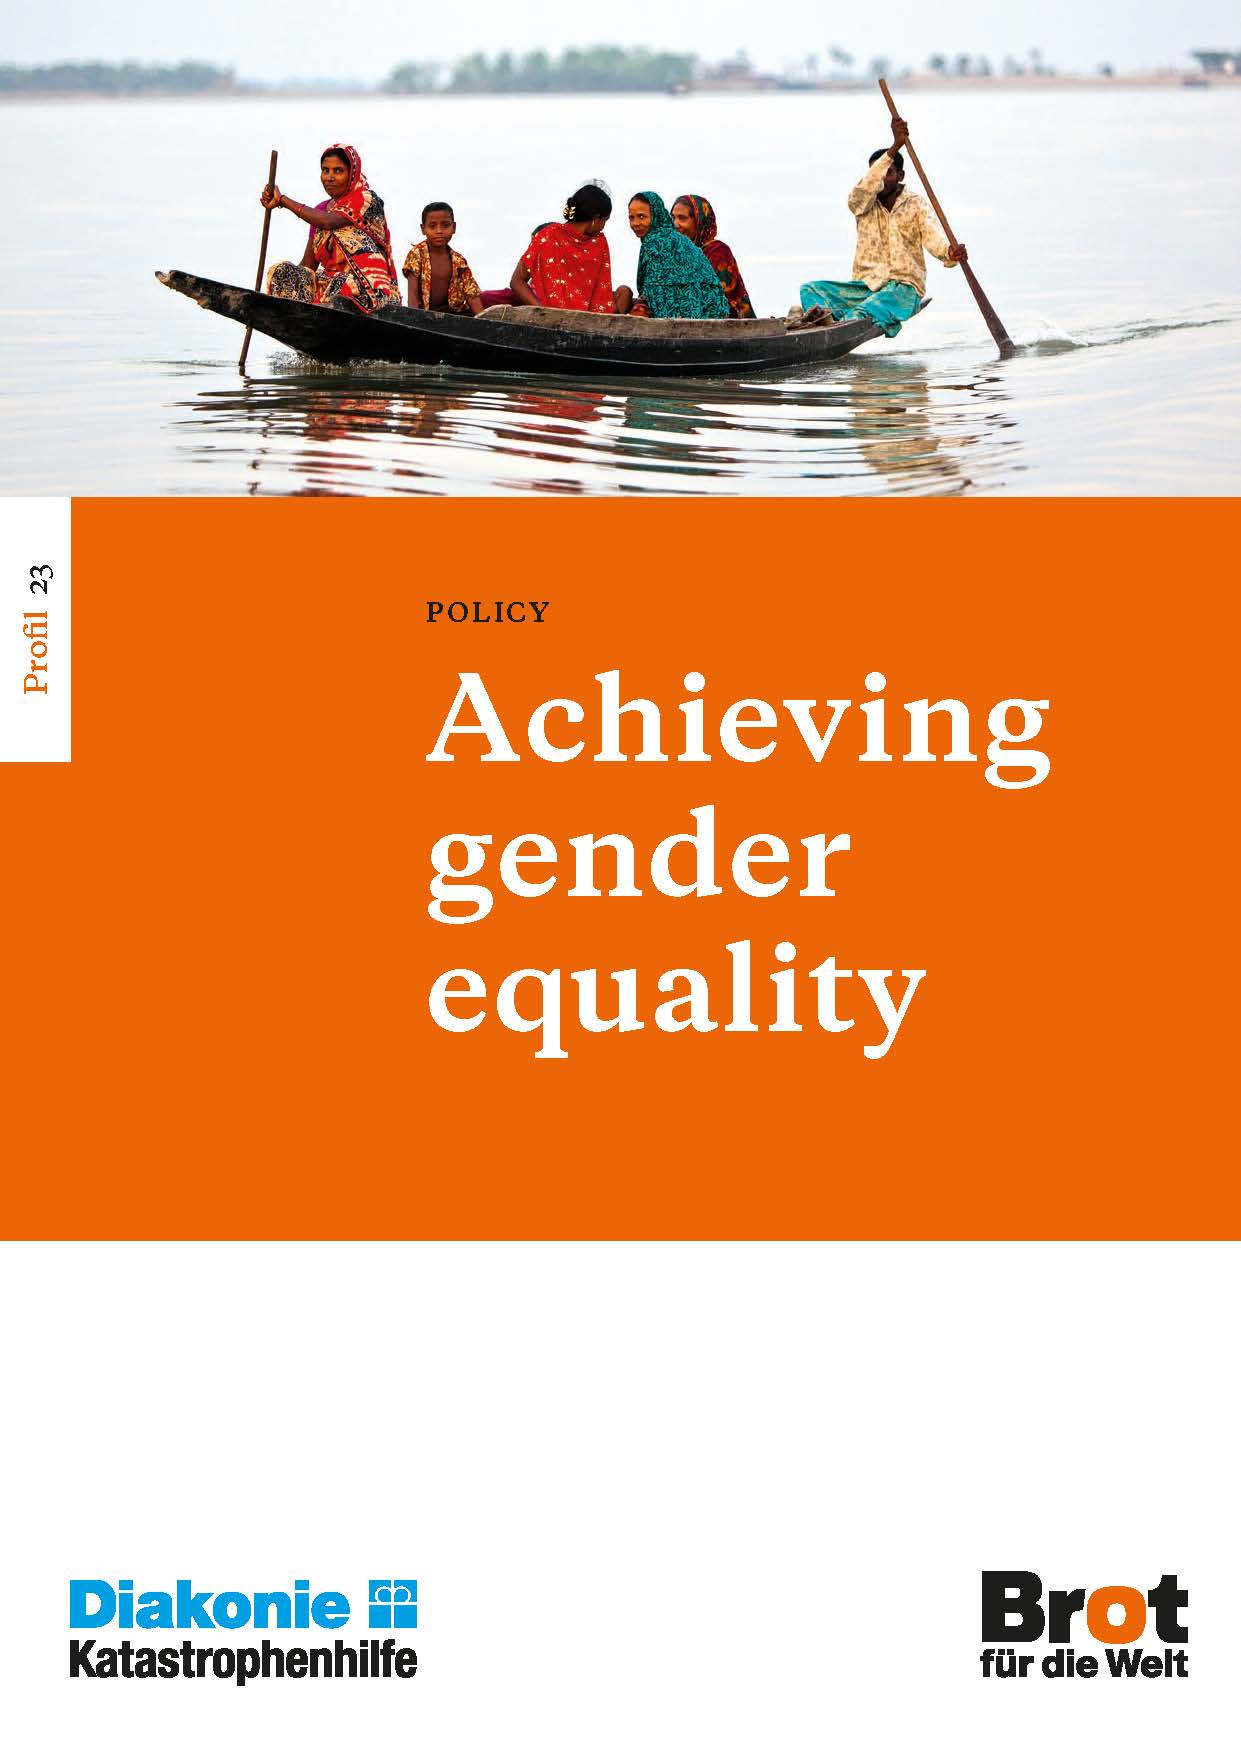 Profile 23: Achieving gender equality